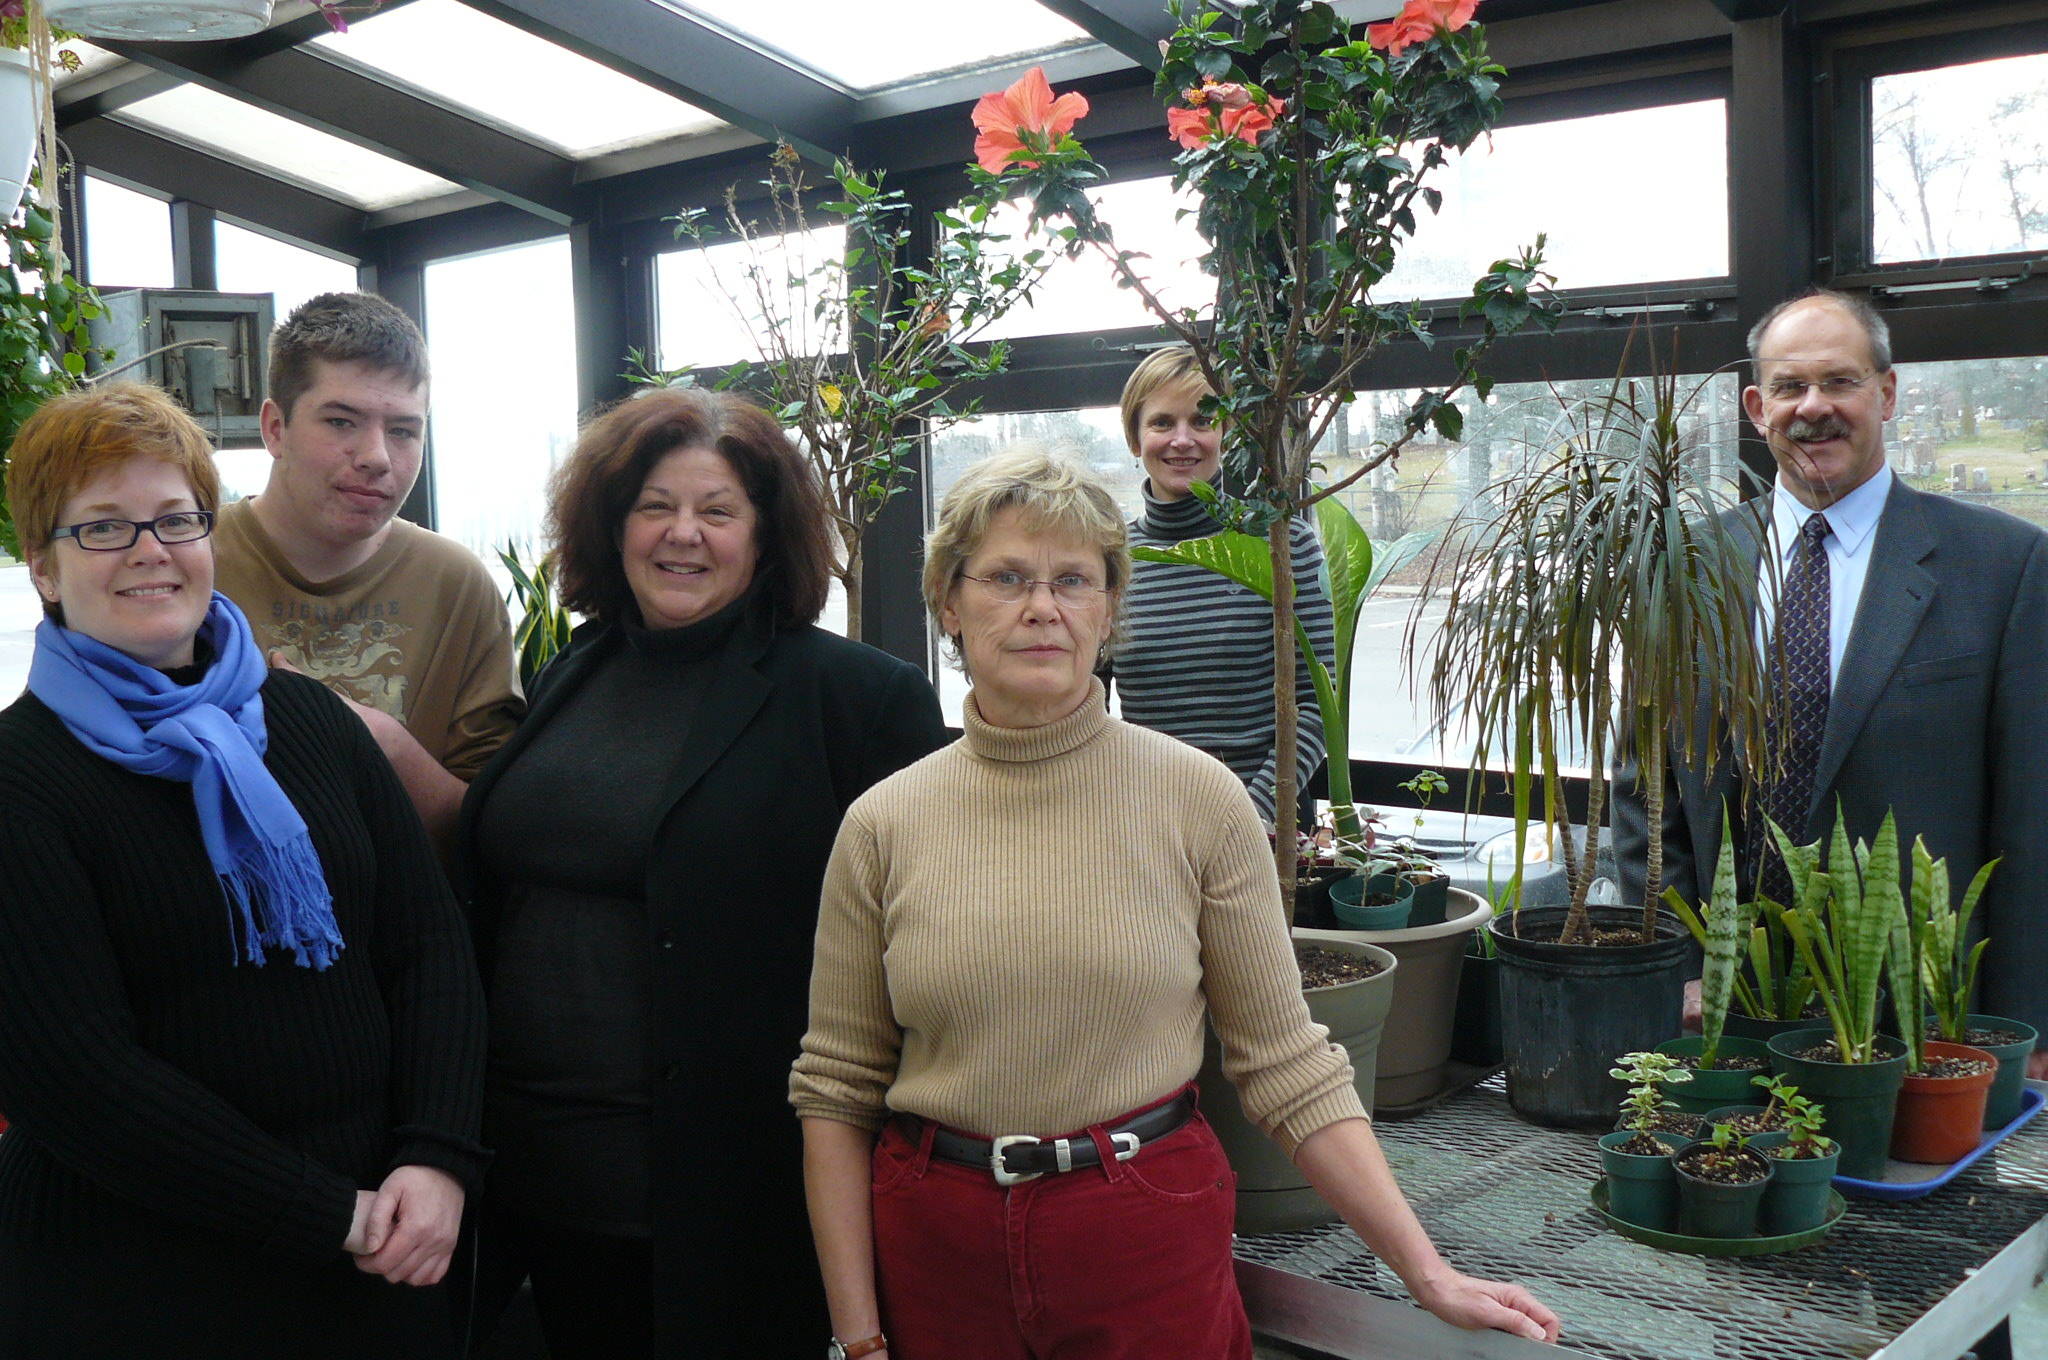 2009 Photo at Lourdes greenhouse from left to right: Anne MacKay (Grants Committee, Guelph Community Foundation); Justin Kyle Evans (student); Eileen Clinton (Principal of Alternative Learning, WCDSB); Sharon Stewart (Executive Director, The Julien Project). In background: Andrea Olson (Executive Director, Guelph Community Foundation) and John Candiotto (Principal, Our Lady of Lourdes CHS).